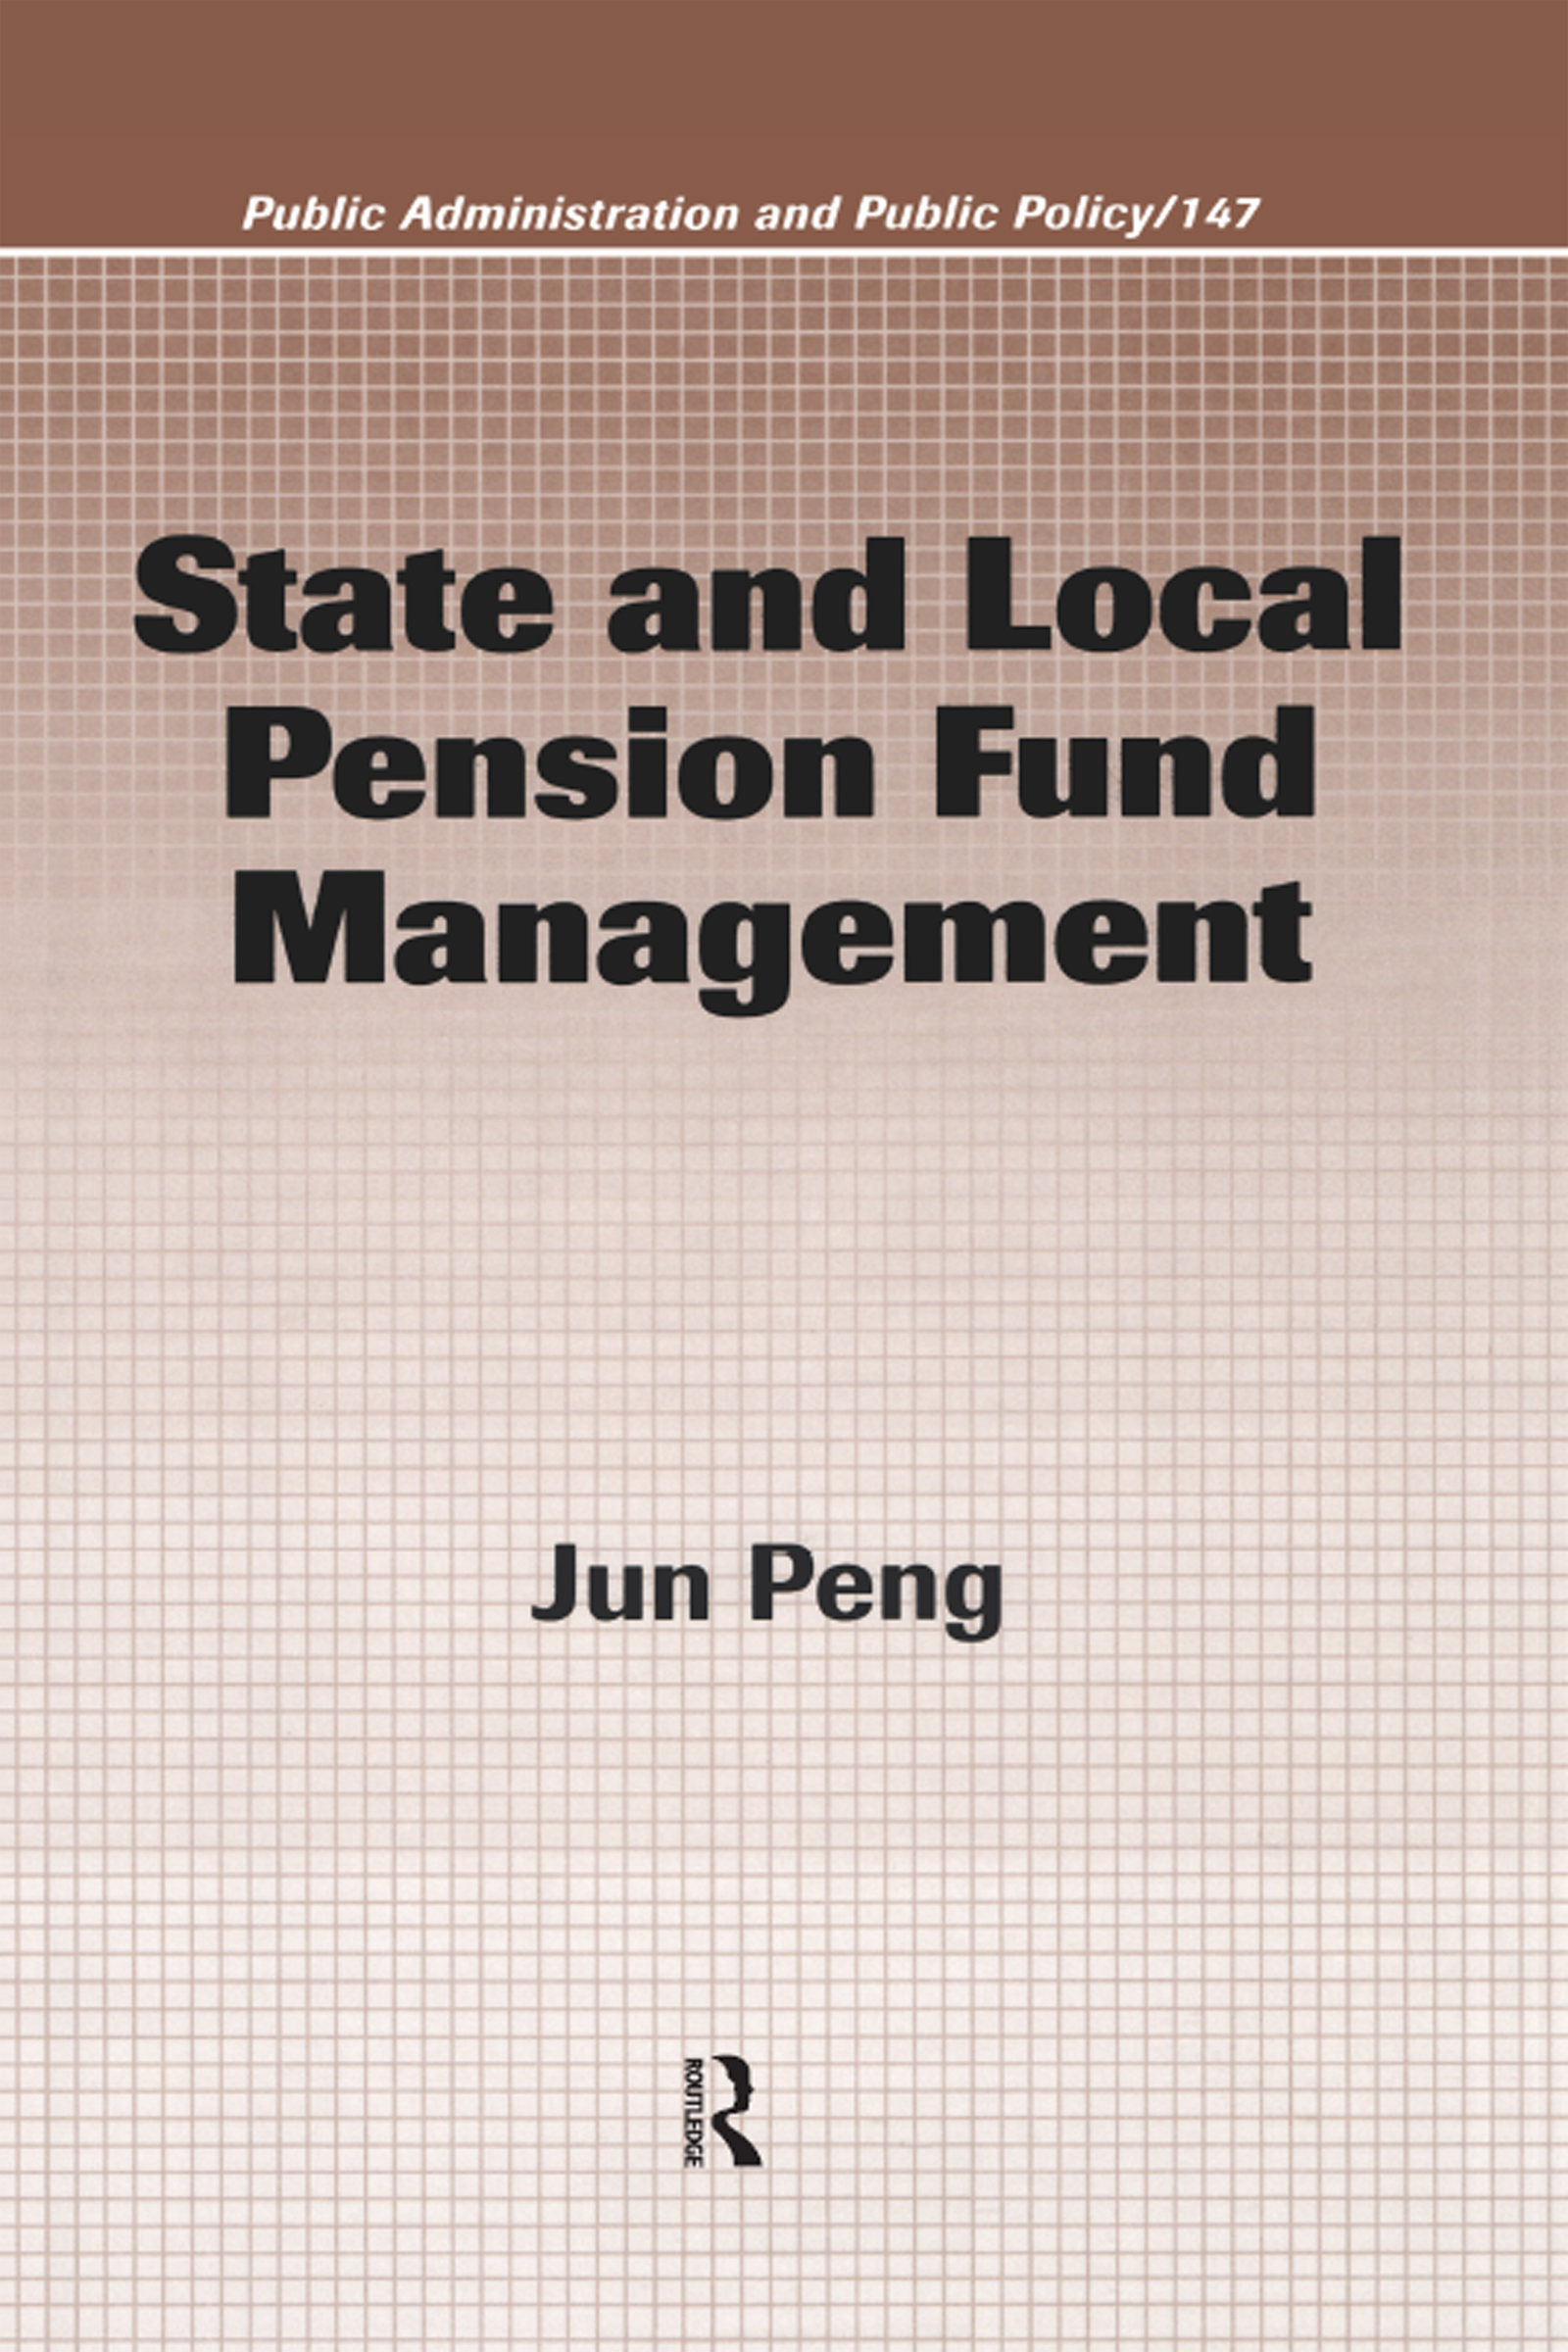 State and Local Pension Fund Management